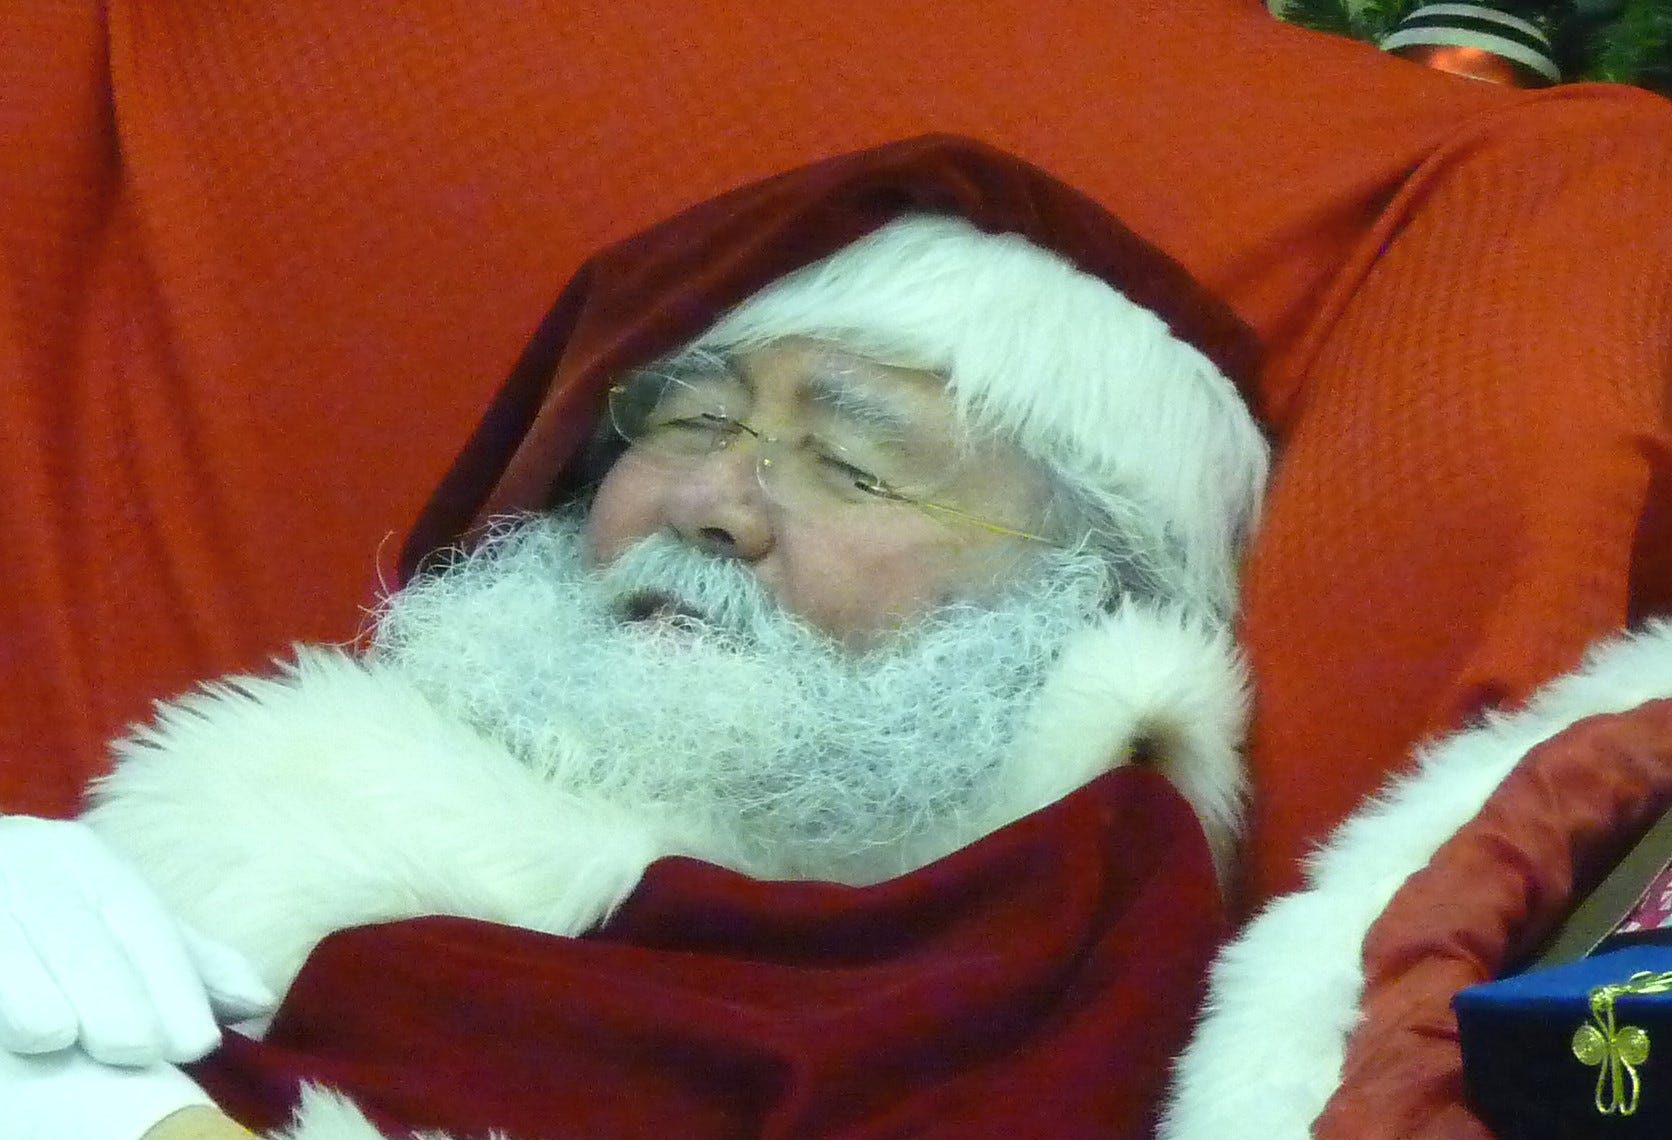 Is Santa Claus coming to town? Mall Santas may lose gigs in first holiday season since the COVID-19 pandemic